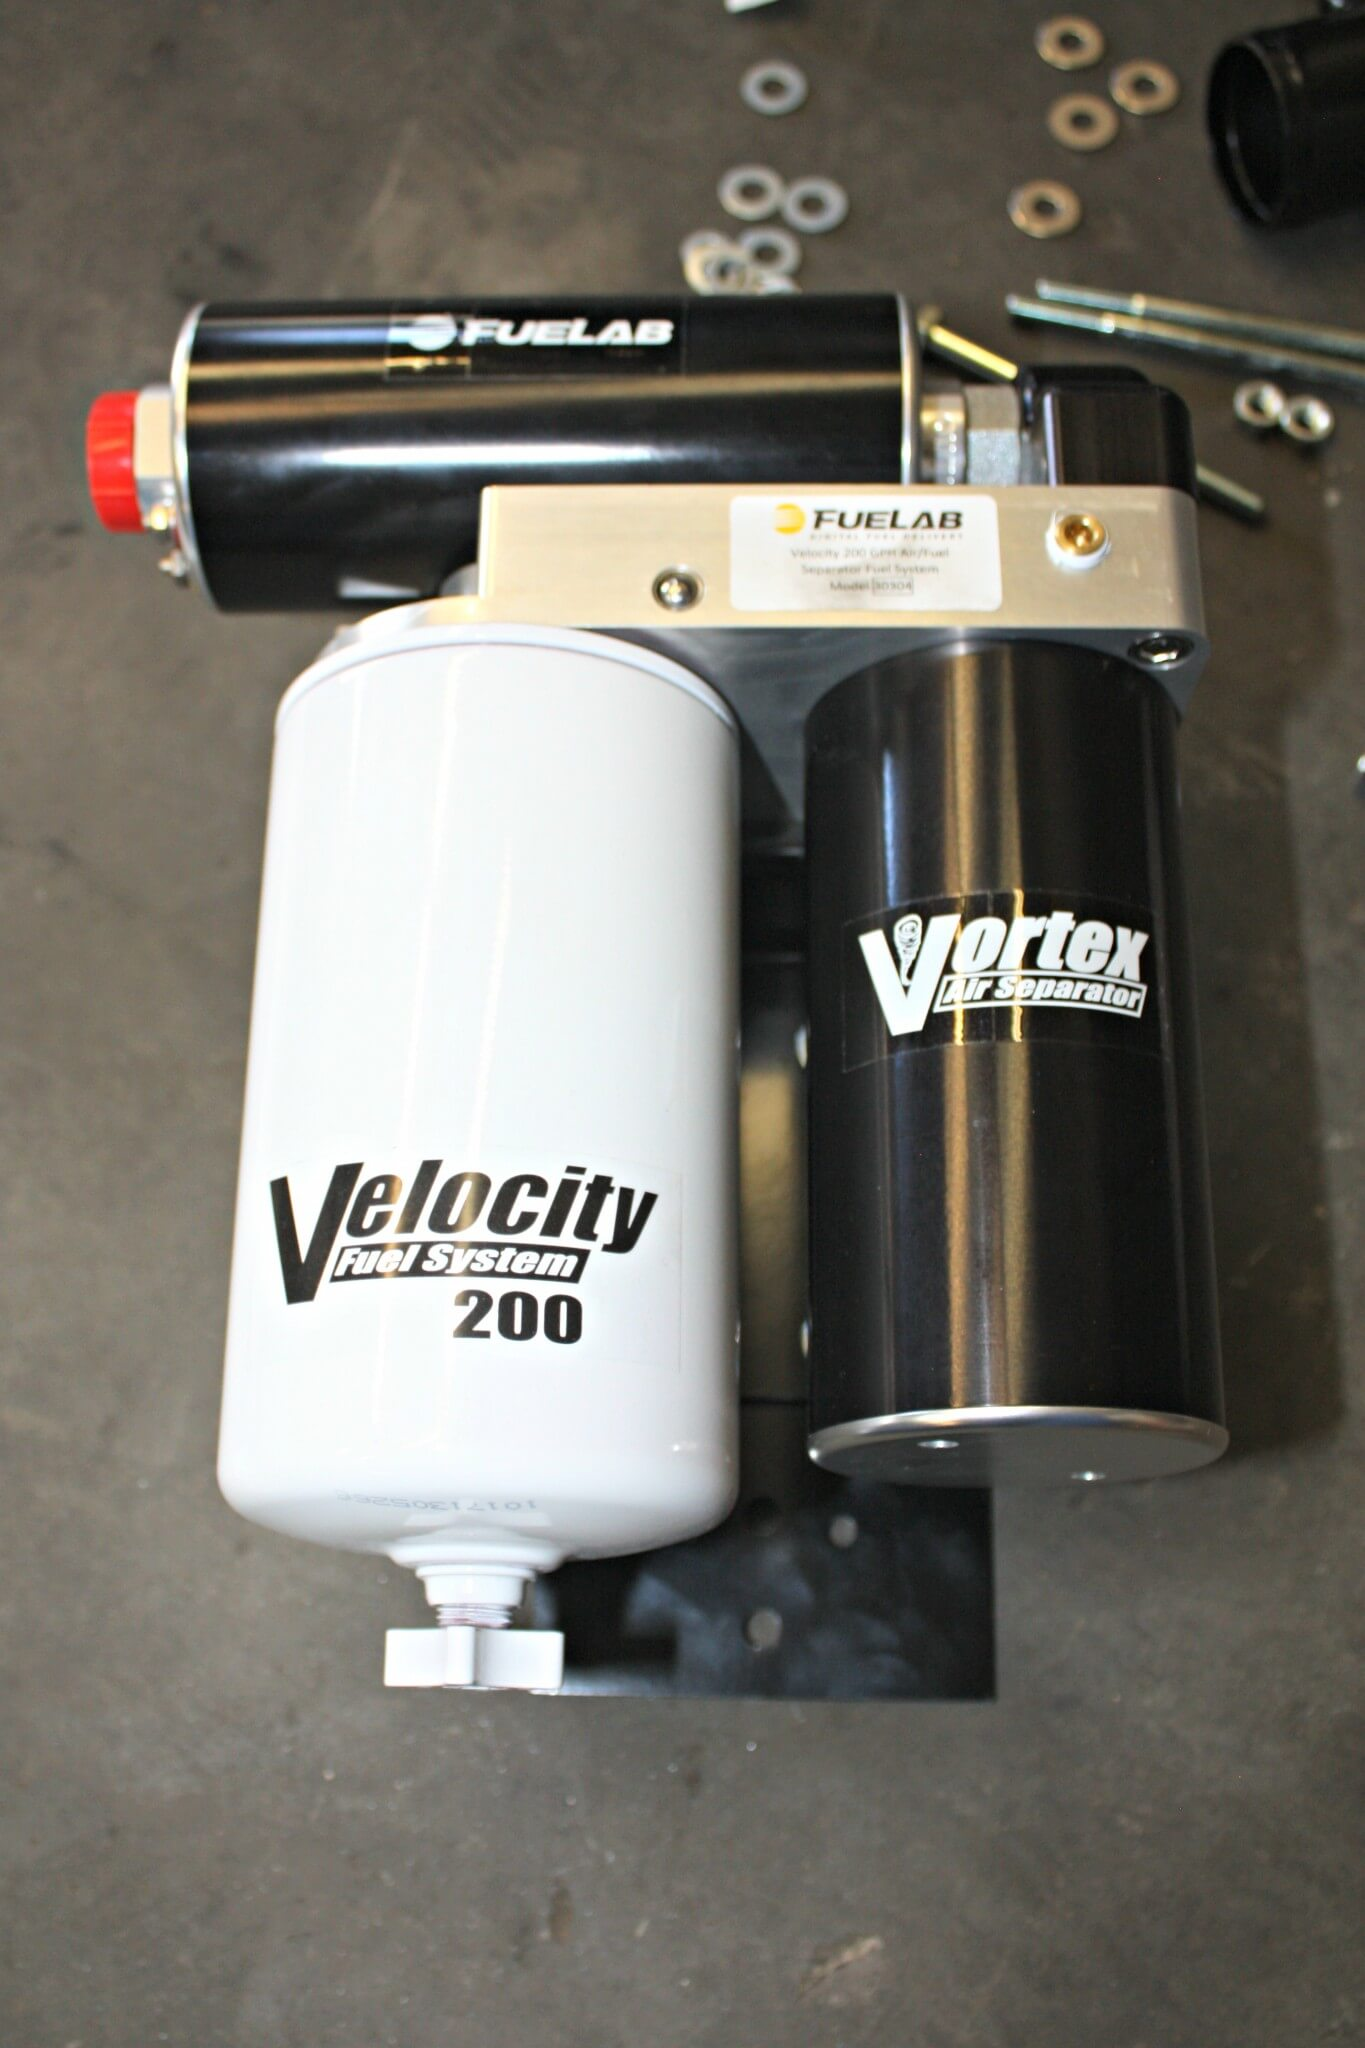 Using a rather large fuel filter with a built-in water separation feature